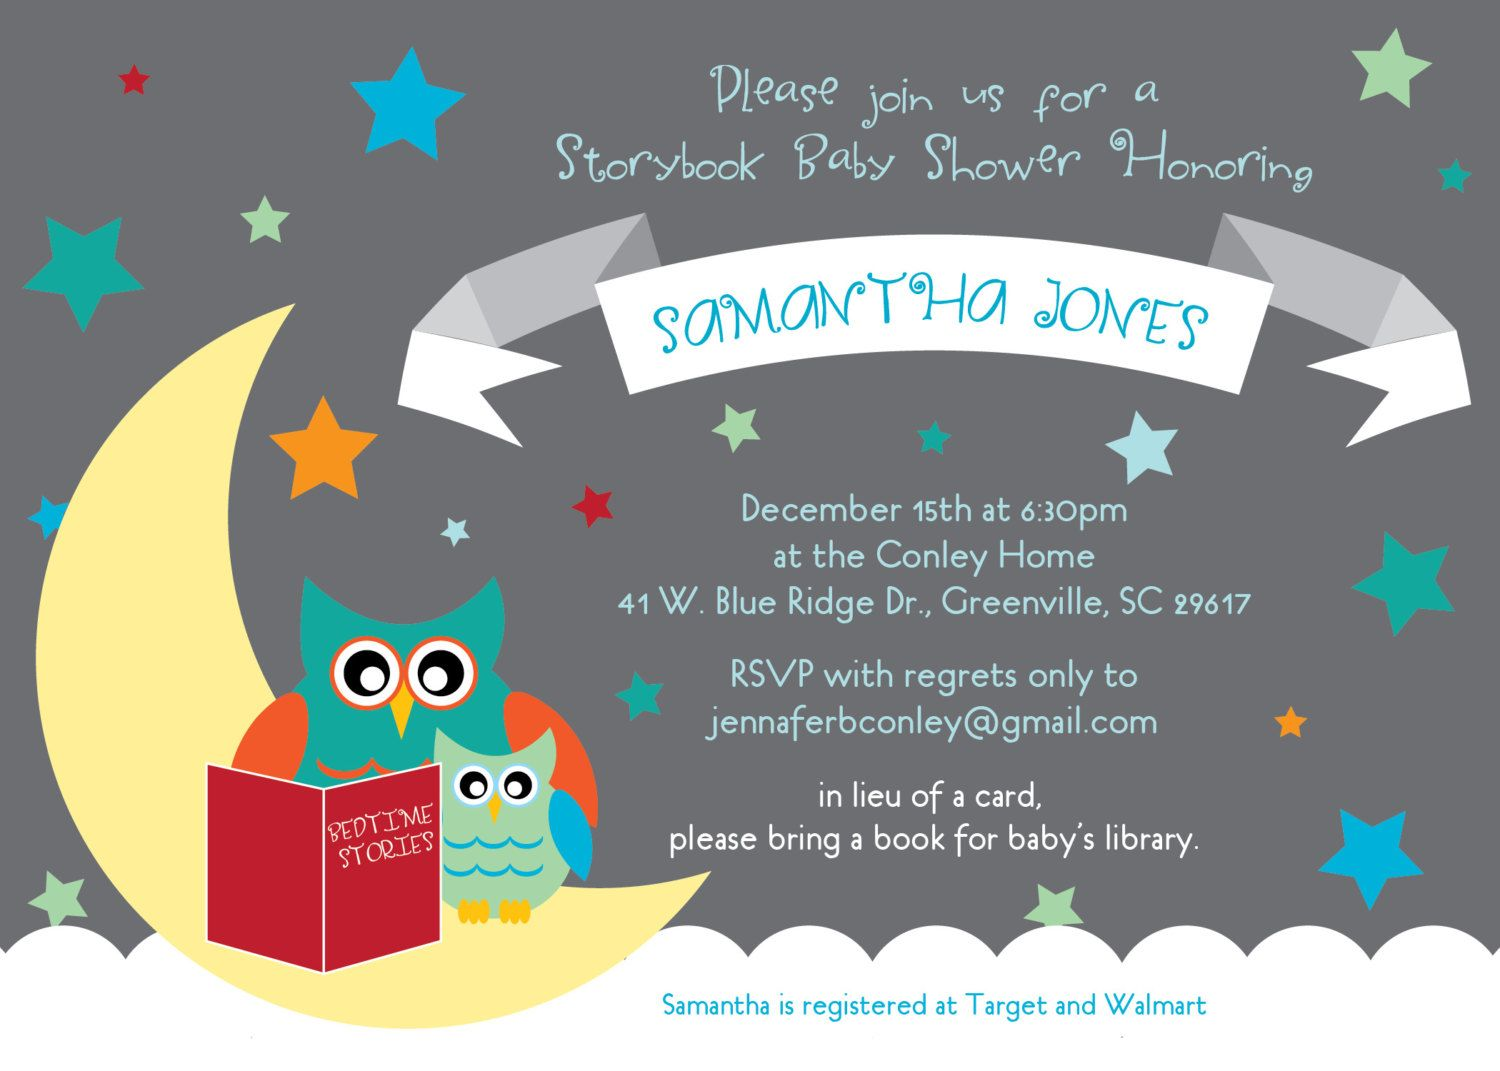 Baby shower invitations story book themed mom and baby owl moon baby shower invitations story book themed mom and baby owl moon and stars boy or girl gender neutral modern set of 10 from ohcreativeone llc filmwisefo Choice Image